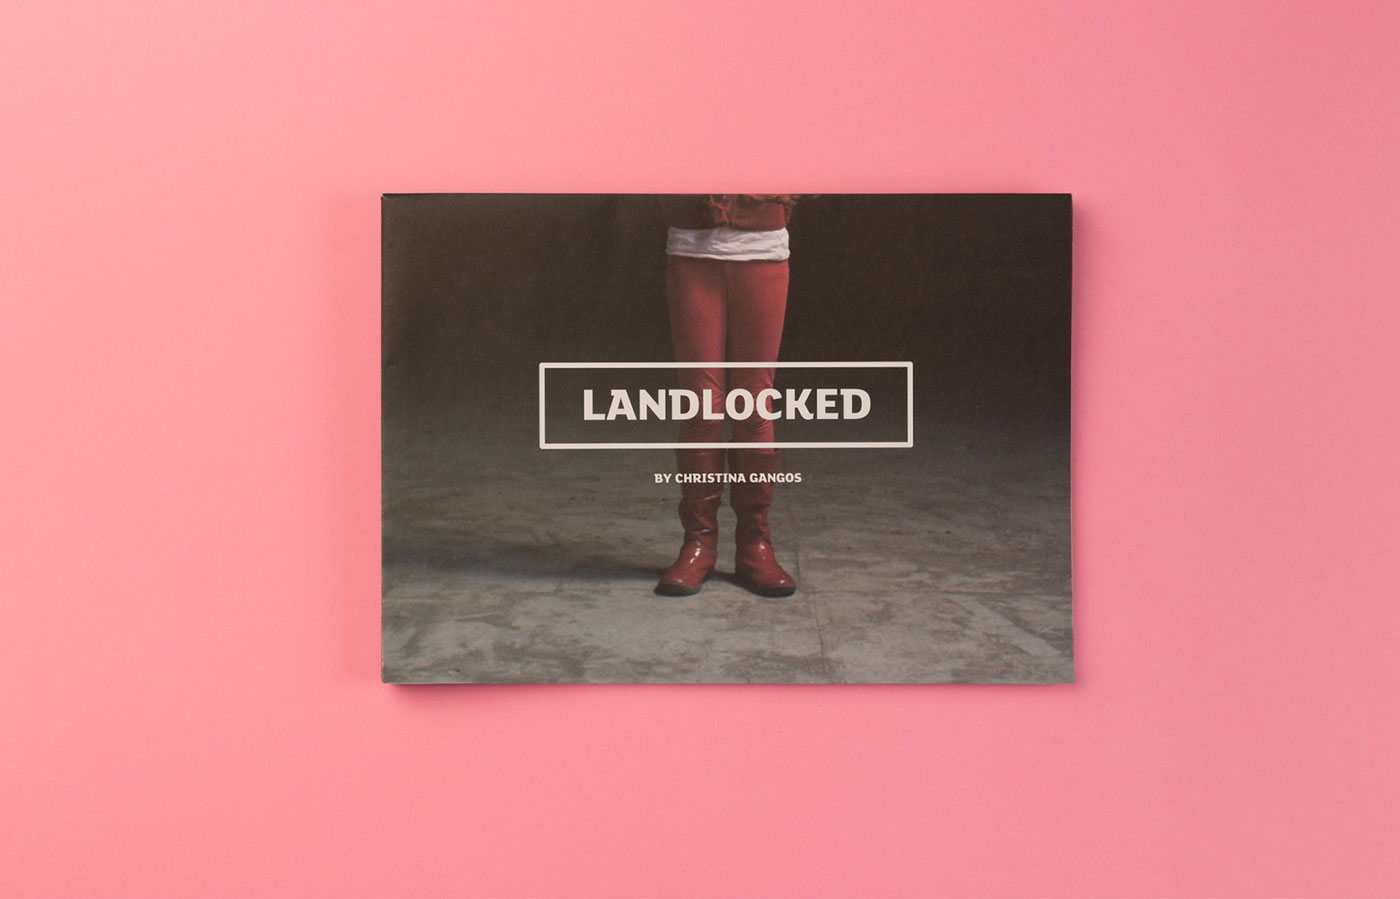 Graphic design for Landlocked by Piquant Limerick